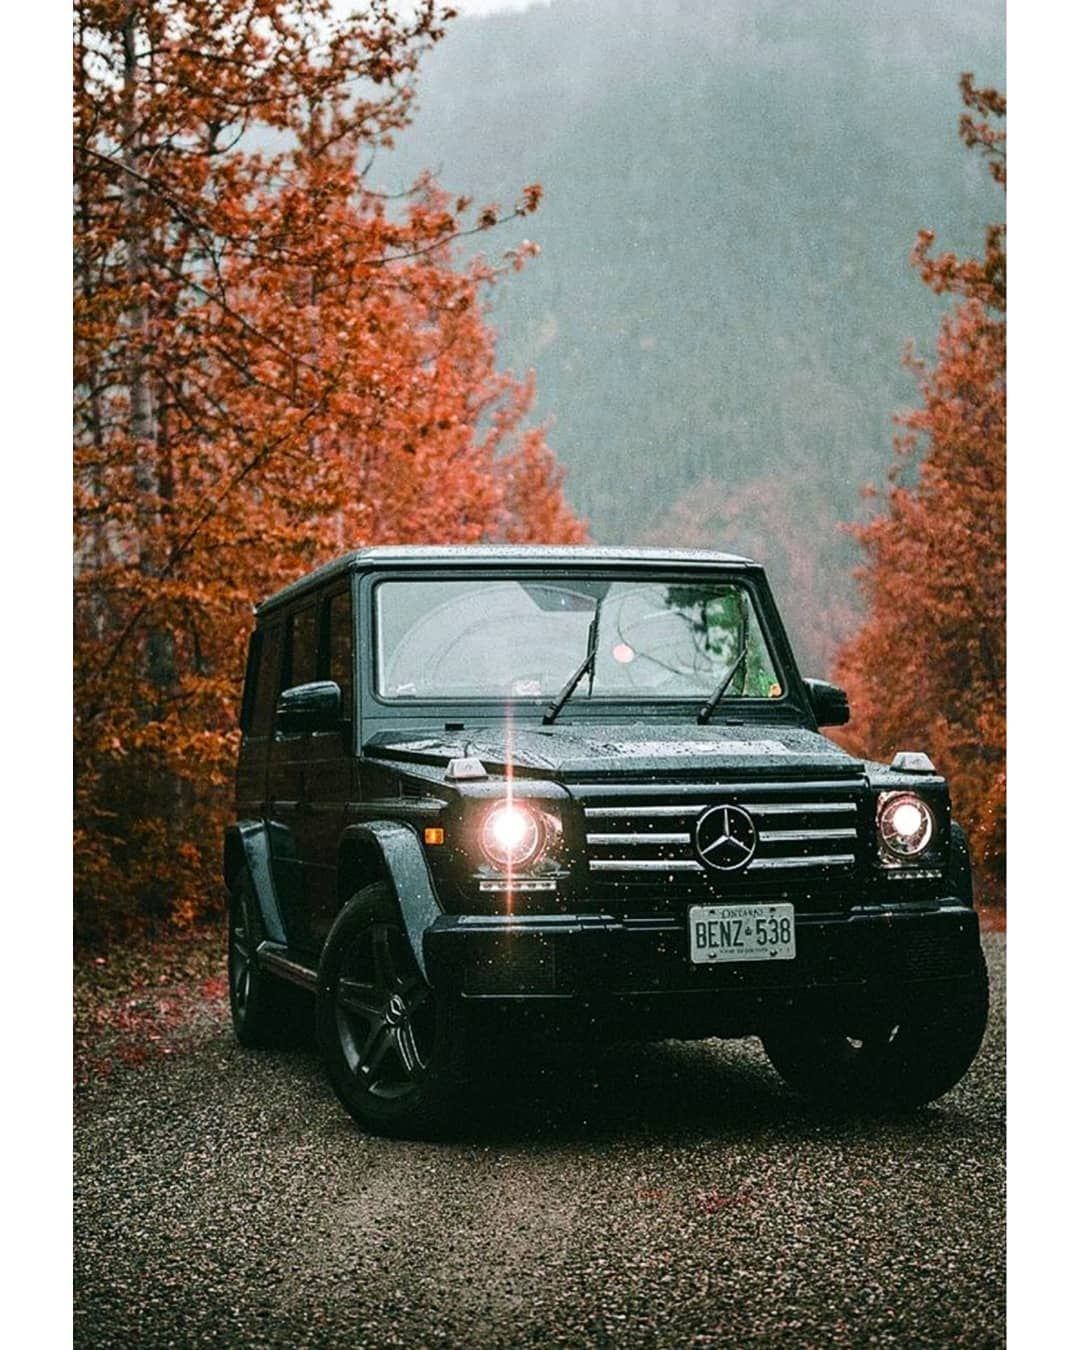 pin by lizeth valencia on cars in 2020 mercedes jeep mercedes car mercedes benz cars pinterest